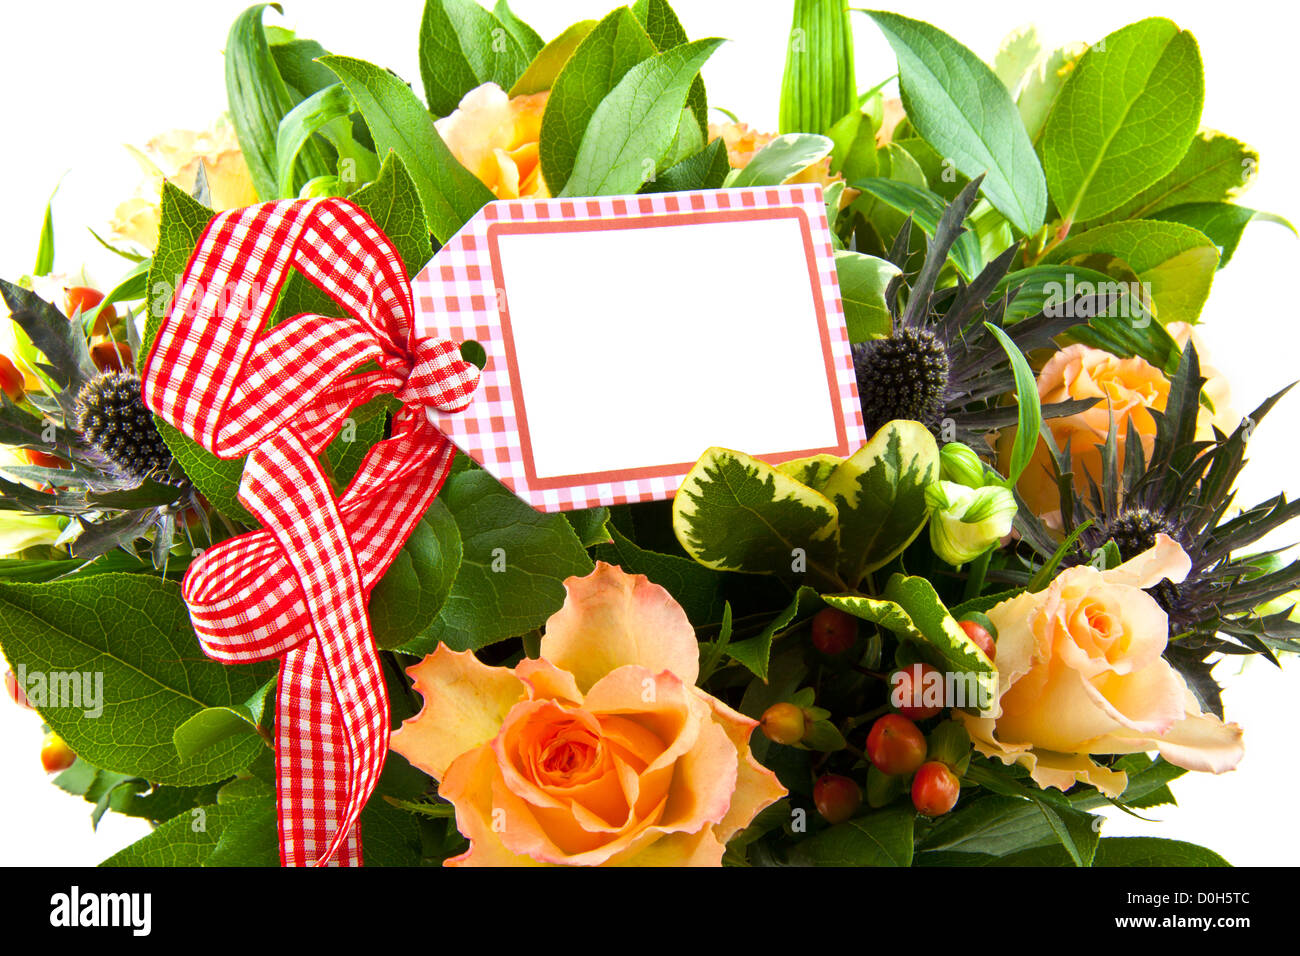 Funeral flowers card stock photos funeral flowers card stock bouquet with different kind of flowers with card on chequered red white ribbon stock image izmirmasajfo